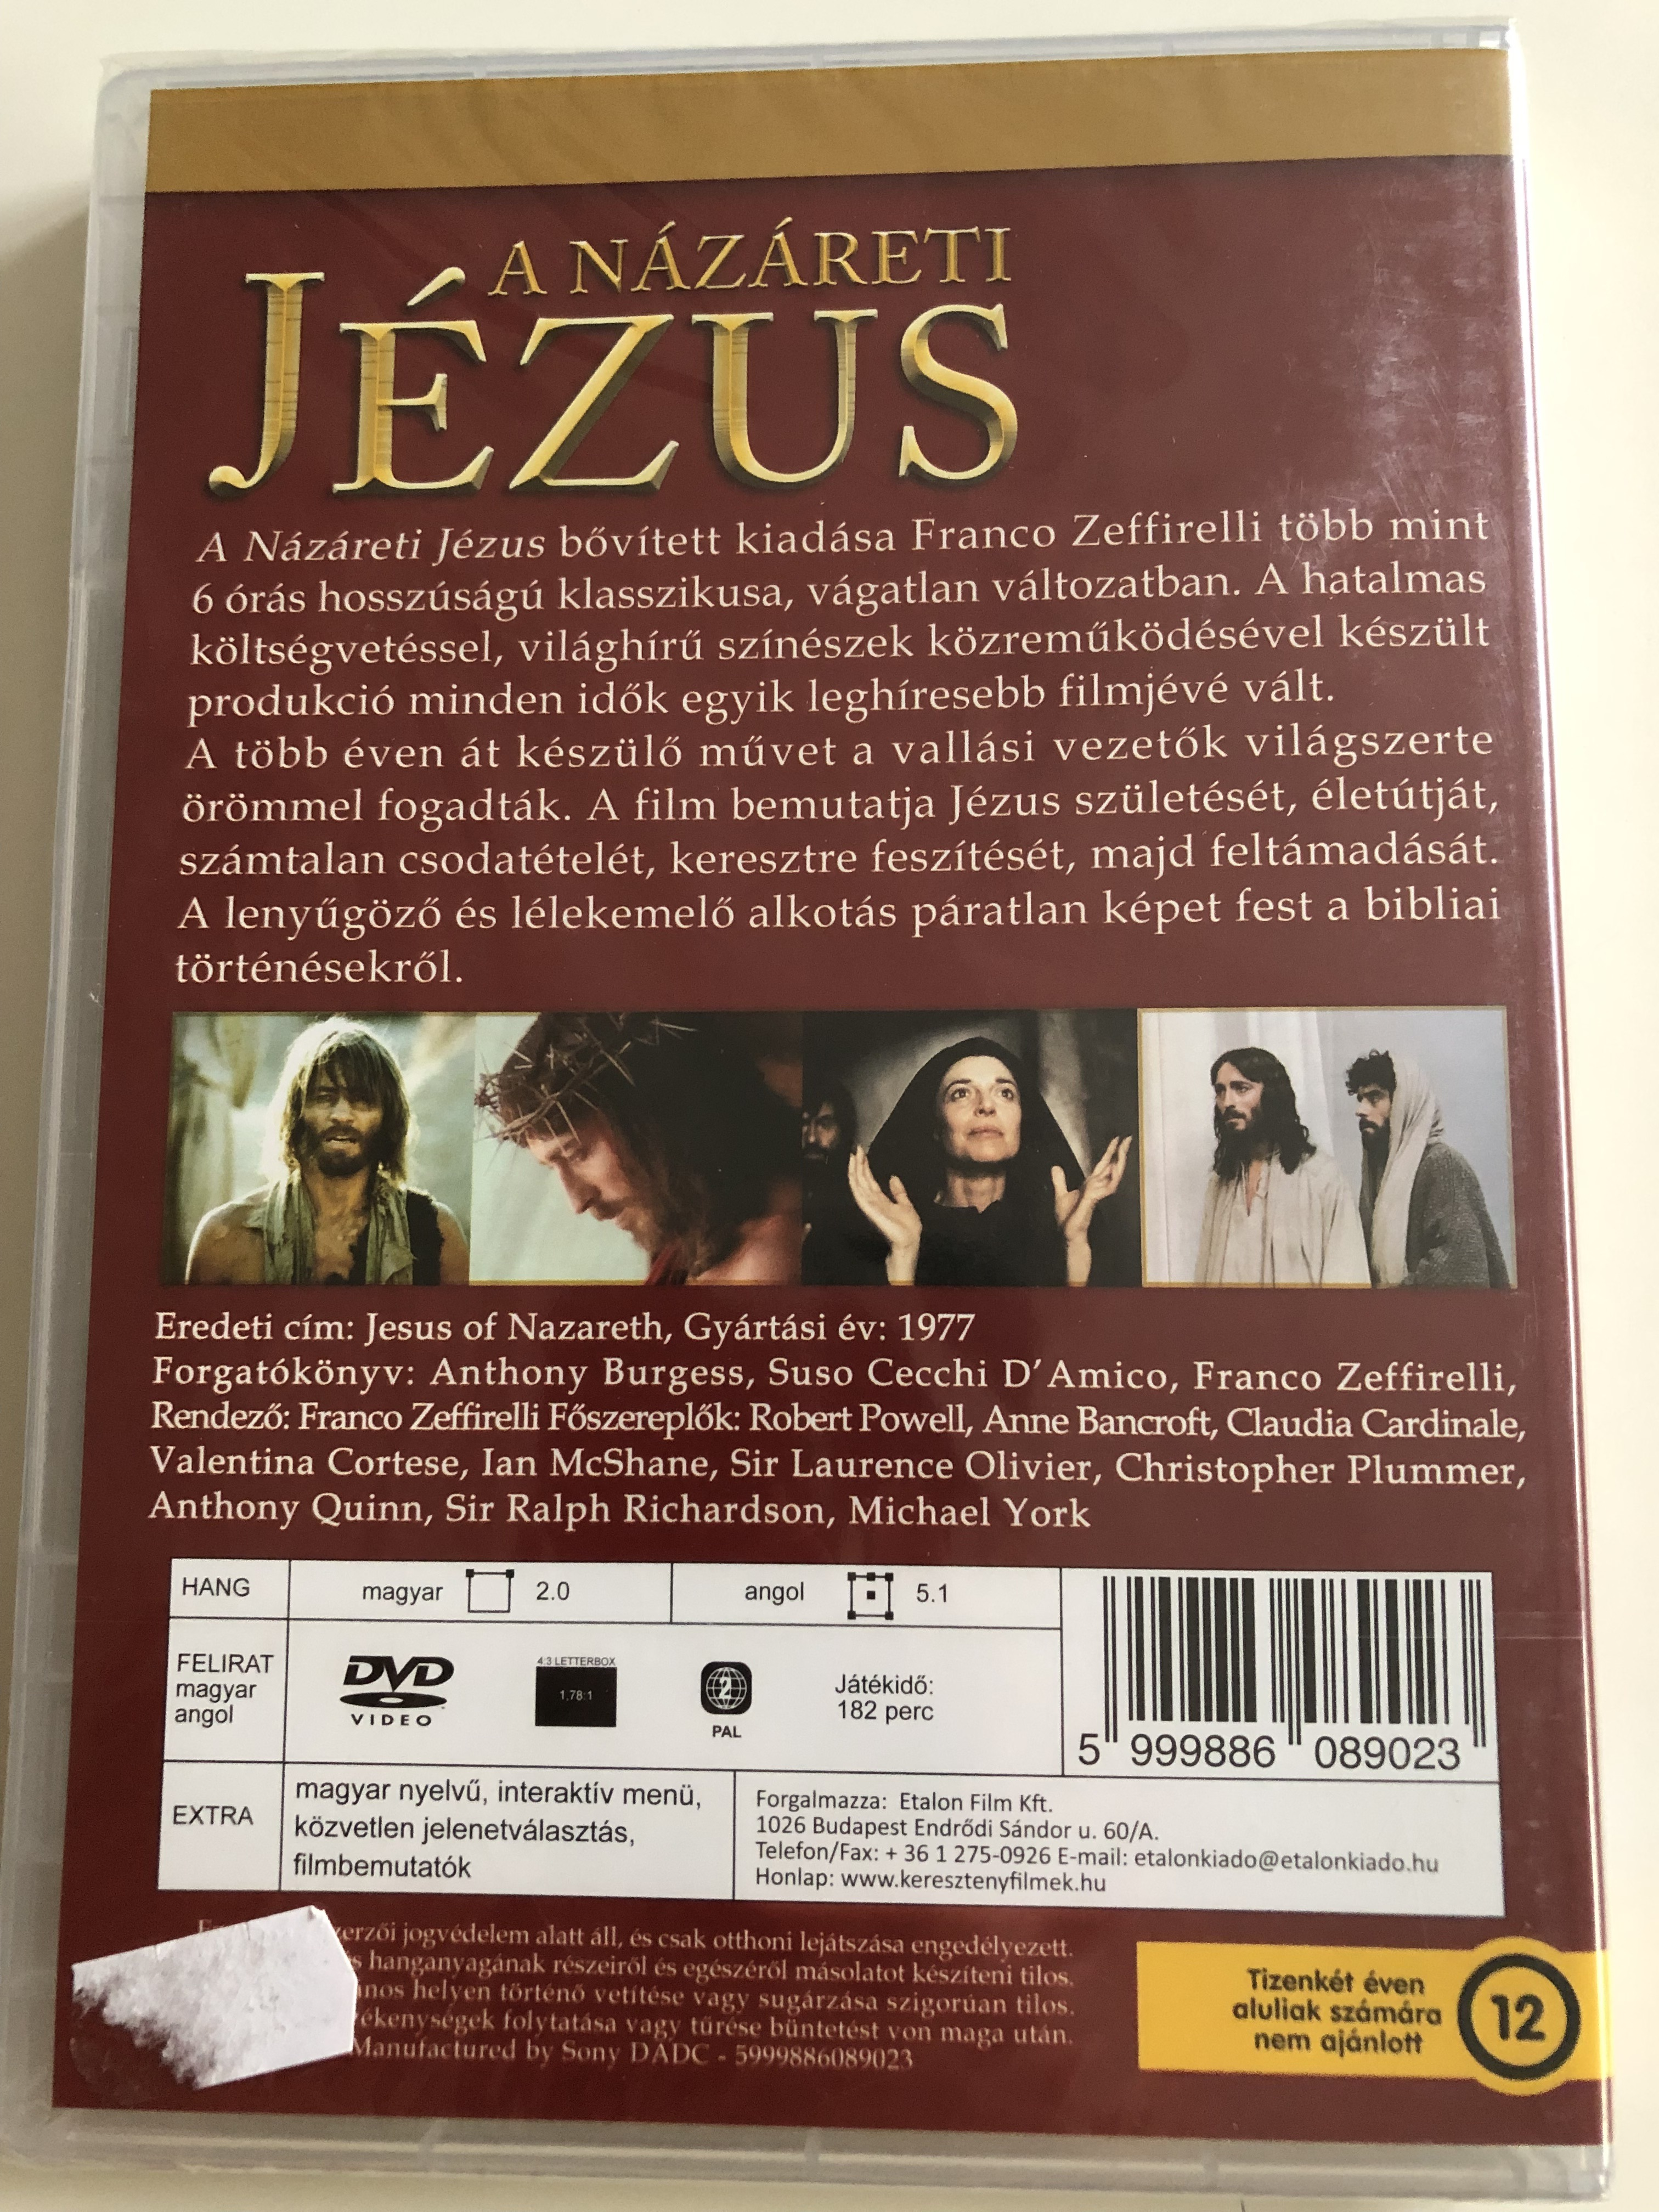 jesus-of-nazareth-ii1.-dvd-1977-a-n-z-reti-j-zus-directed-by-franco-zeffirelli-starring-robert-powell-anne-bancroft-claudia-cardinale-valentina-cortese-ian-mcshane-sir-laurence-olivier-extended-remastered-edition-.jpg